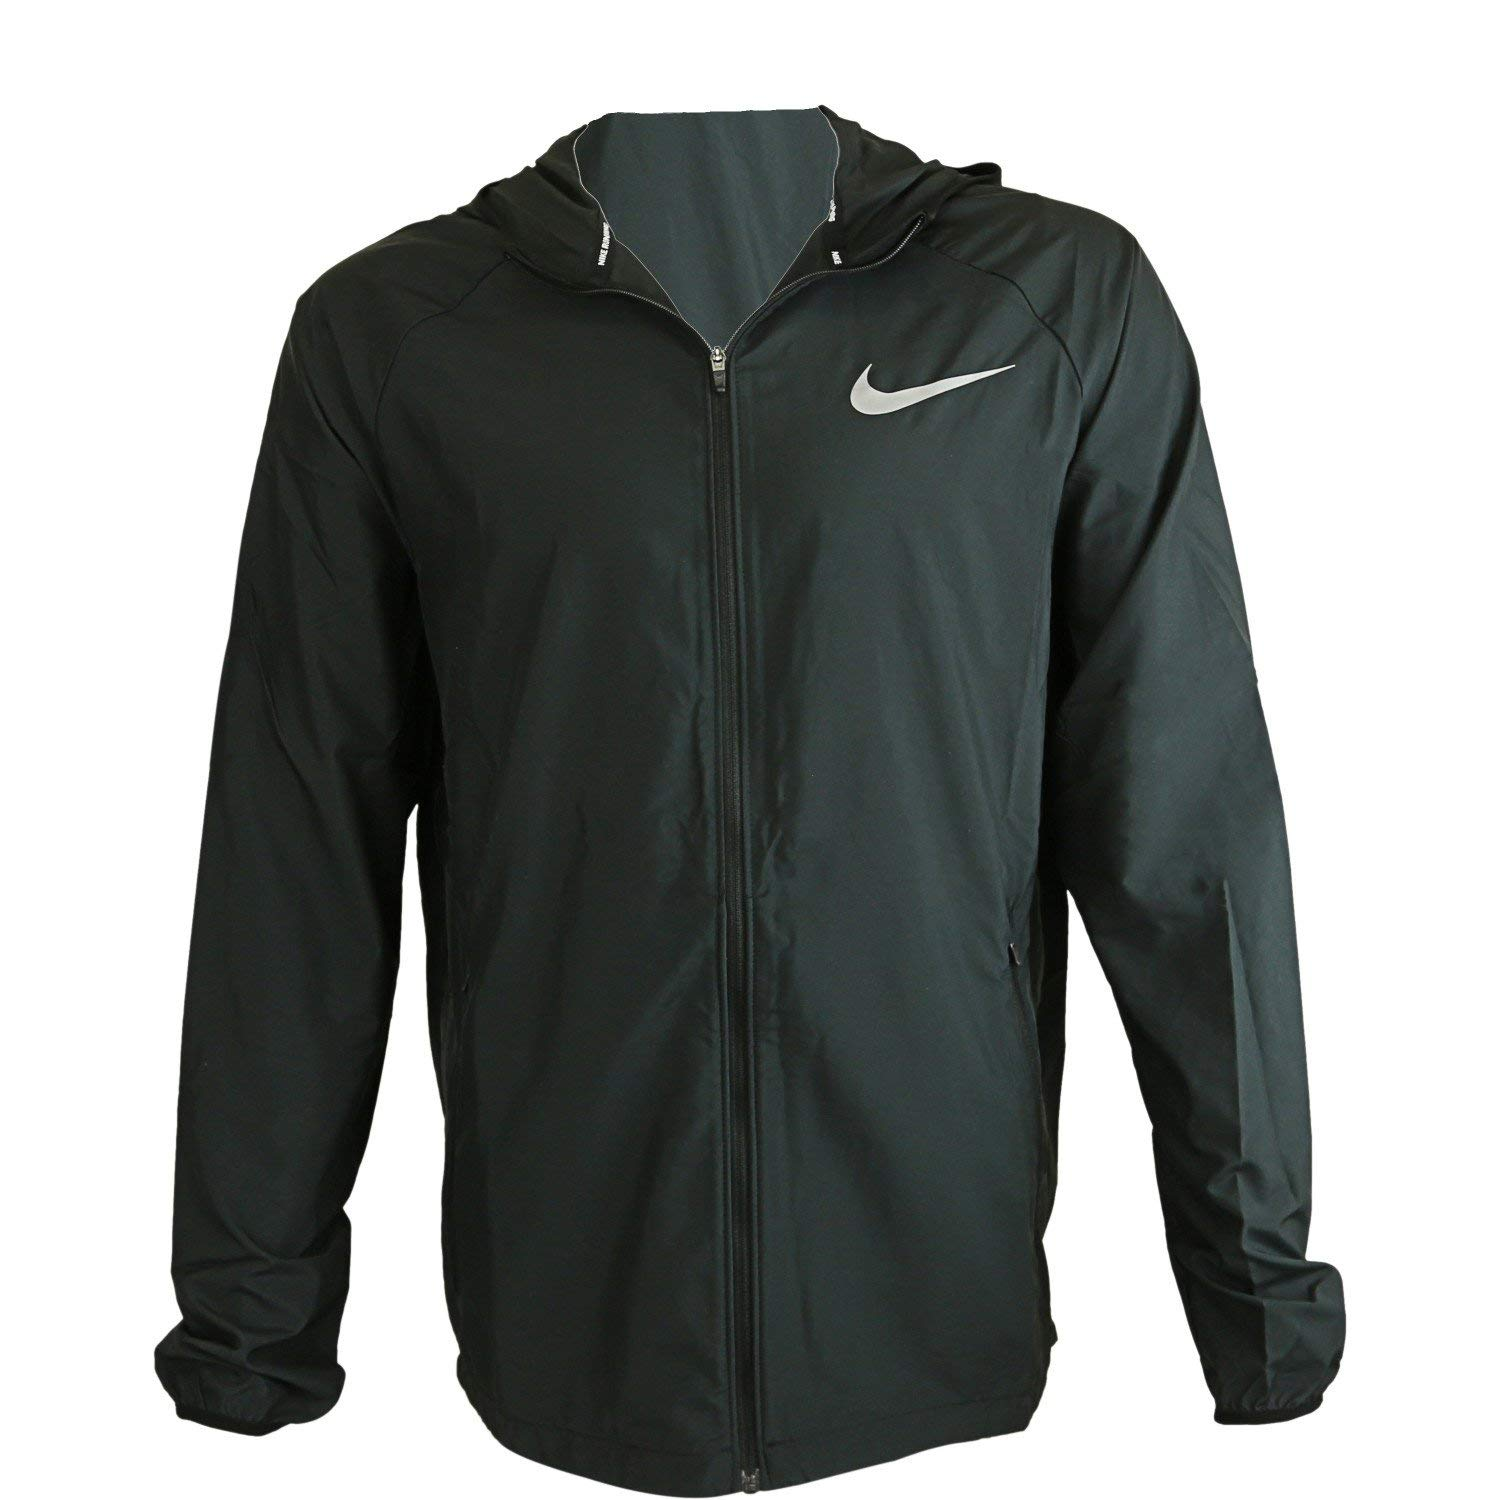 Nike Essential Men's Running Jacket (S, Black) by Nike